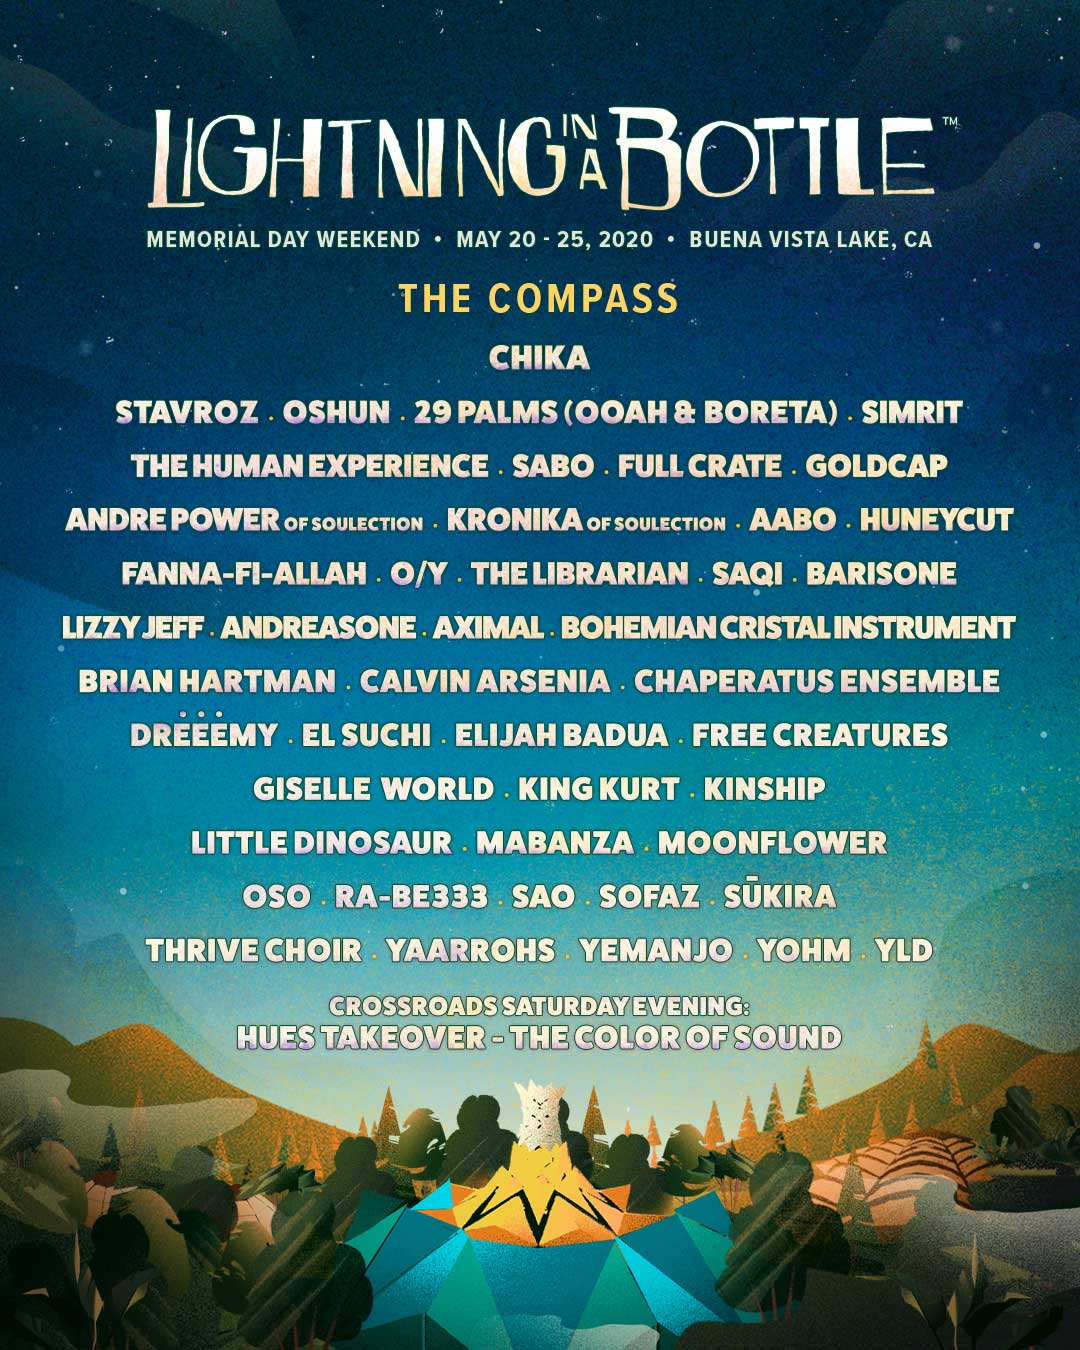 Lightning in a Bottle 2020 - The Compass Lineup